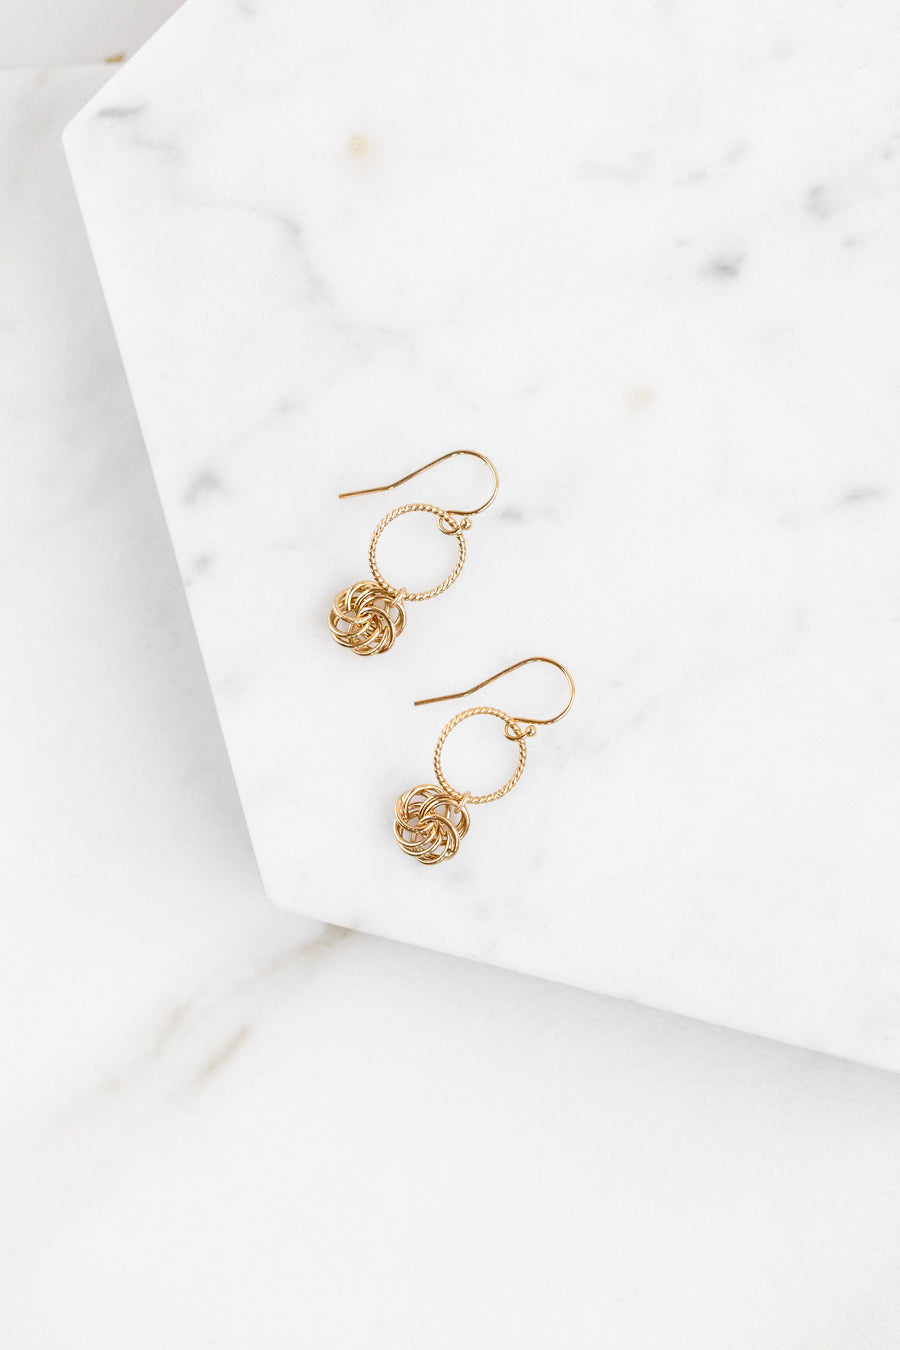 Find the perfect pair of earrings you're looking for from Charme Silkiner! These 14k gold hoop earring with a flower detail charm is seriously stunning. Perfect to dress or dress down any outfit the Malina Earrings are the perfect must have for everyone!